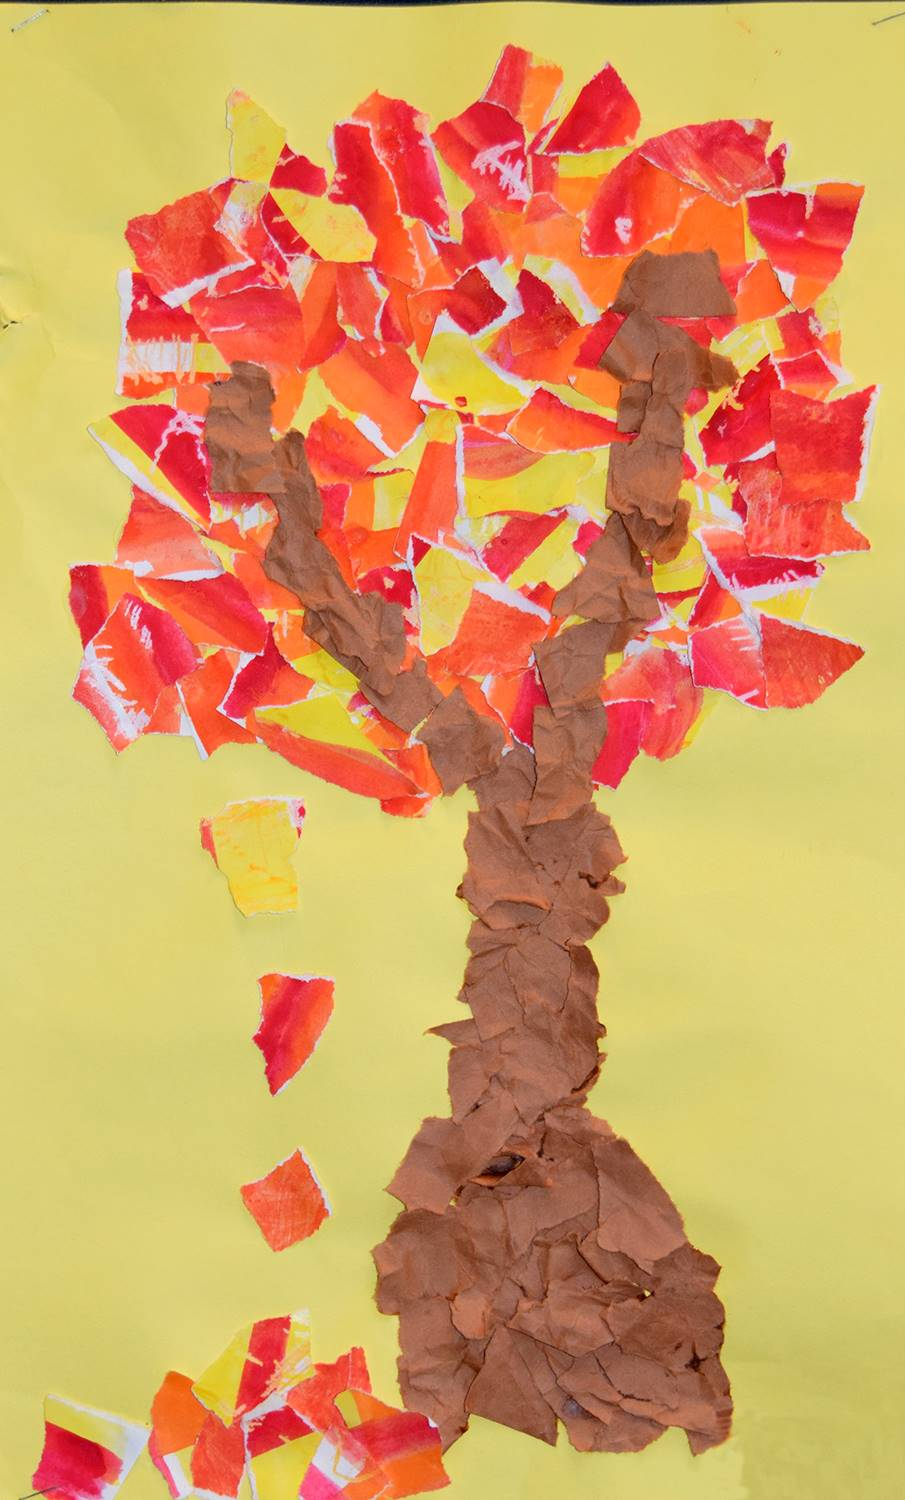 An autumn tree made out of torn construction paper on a yellow background was created by Cameron, an